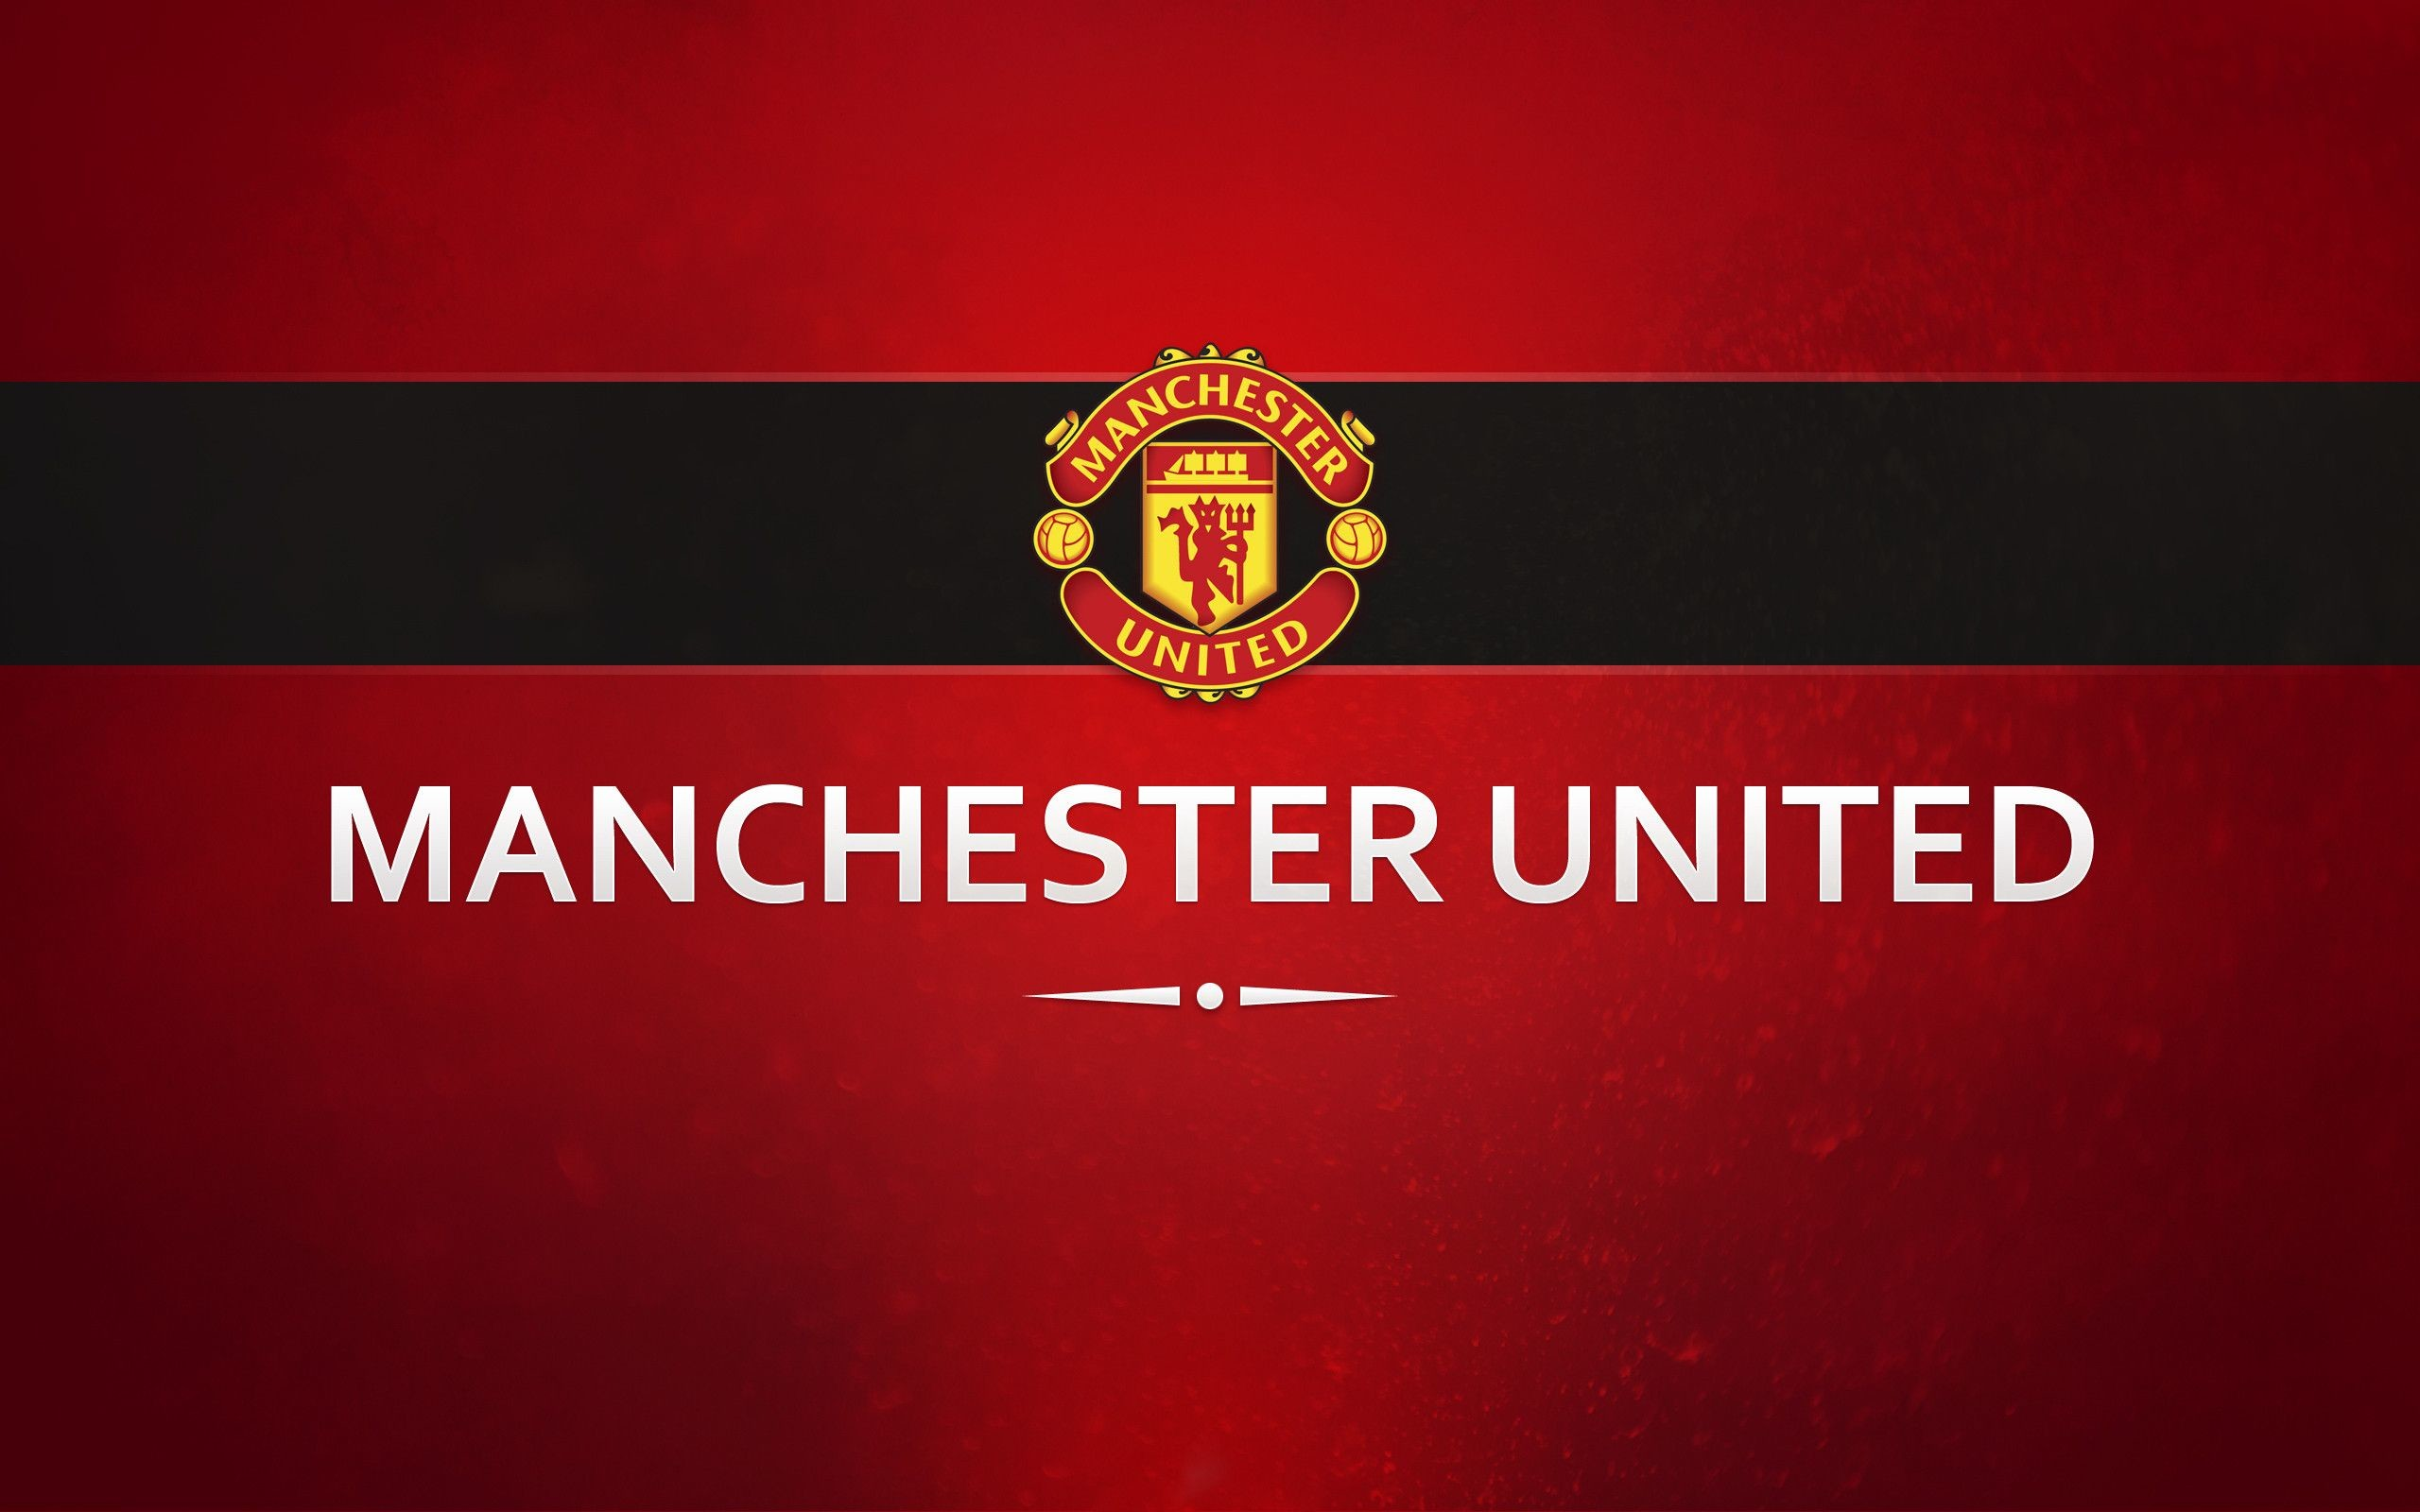 Manchester United Logo Wallpapers HD 2015 – Wallpaper Cave